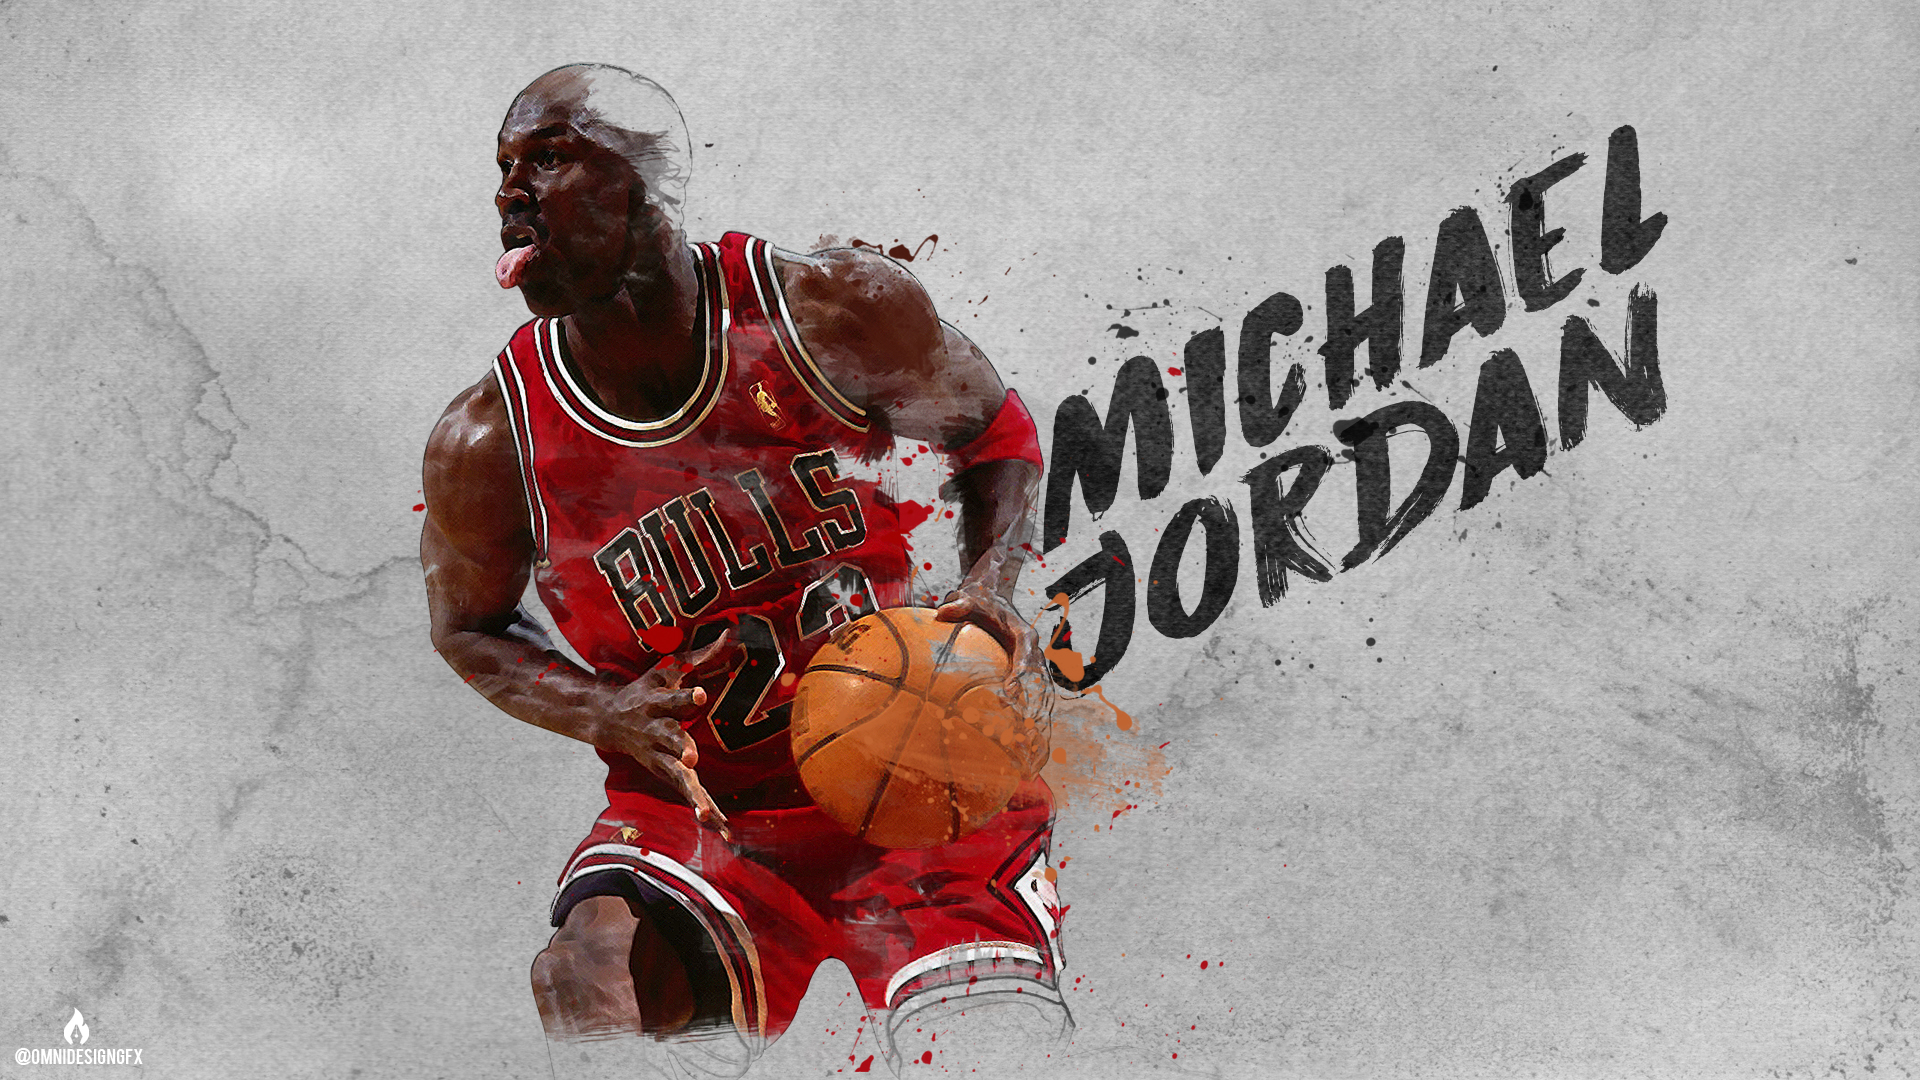 Michael Jordan Artwork5922011418 - Michael Jordan Artwork - Michael, Jordan, Artwork